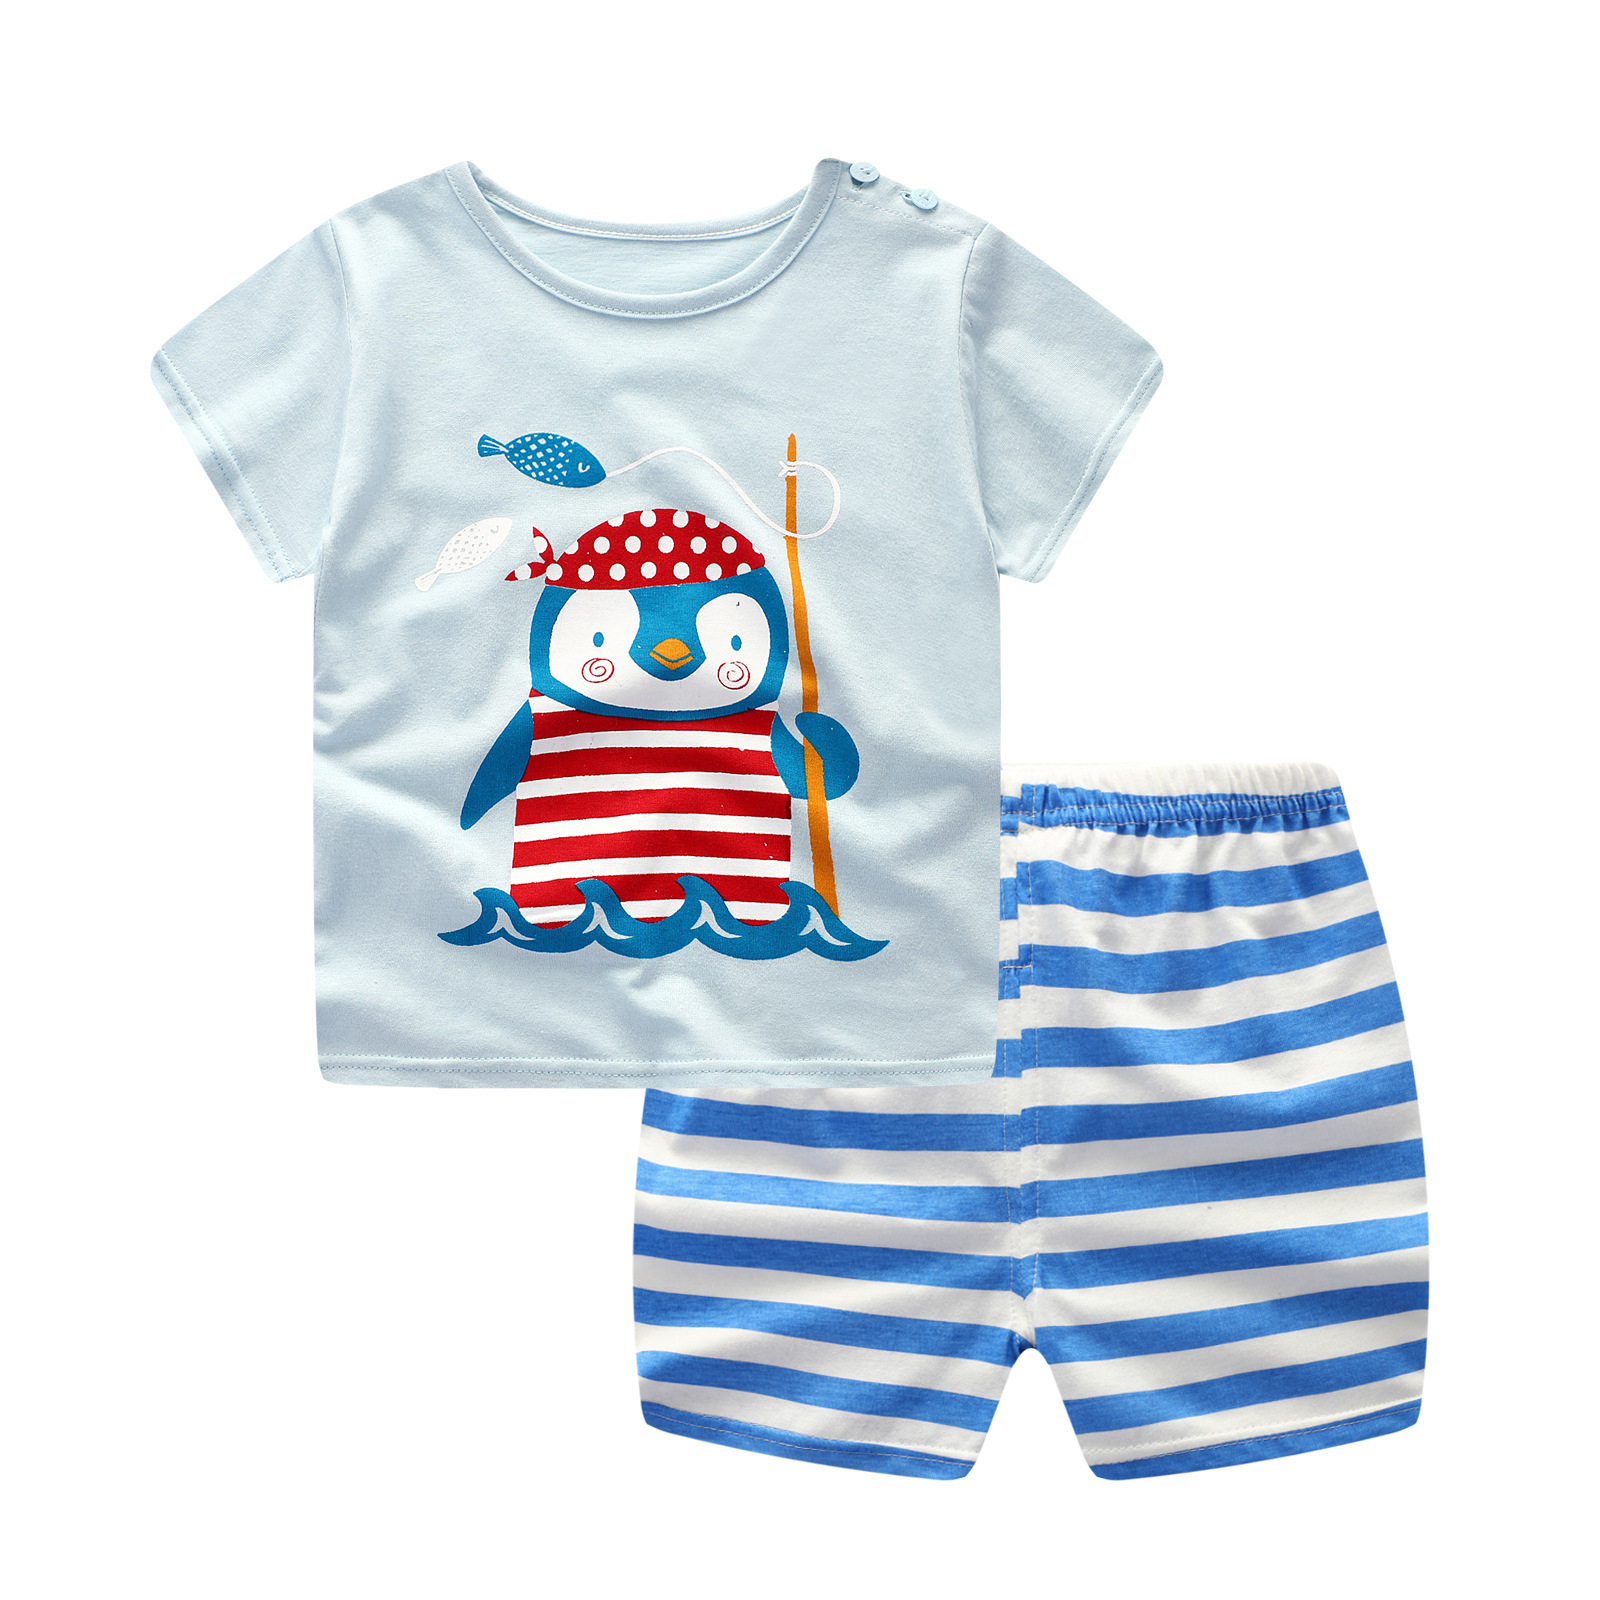 medium resolution of  owl baby boy clothes fashon summer clothes for baby boys cartoon owl outfits